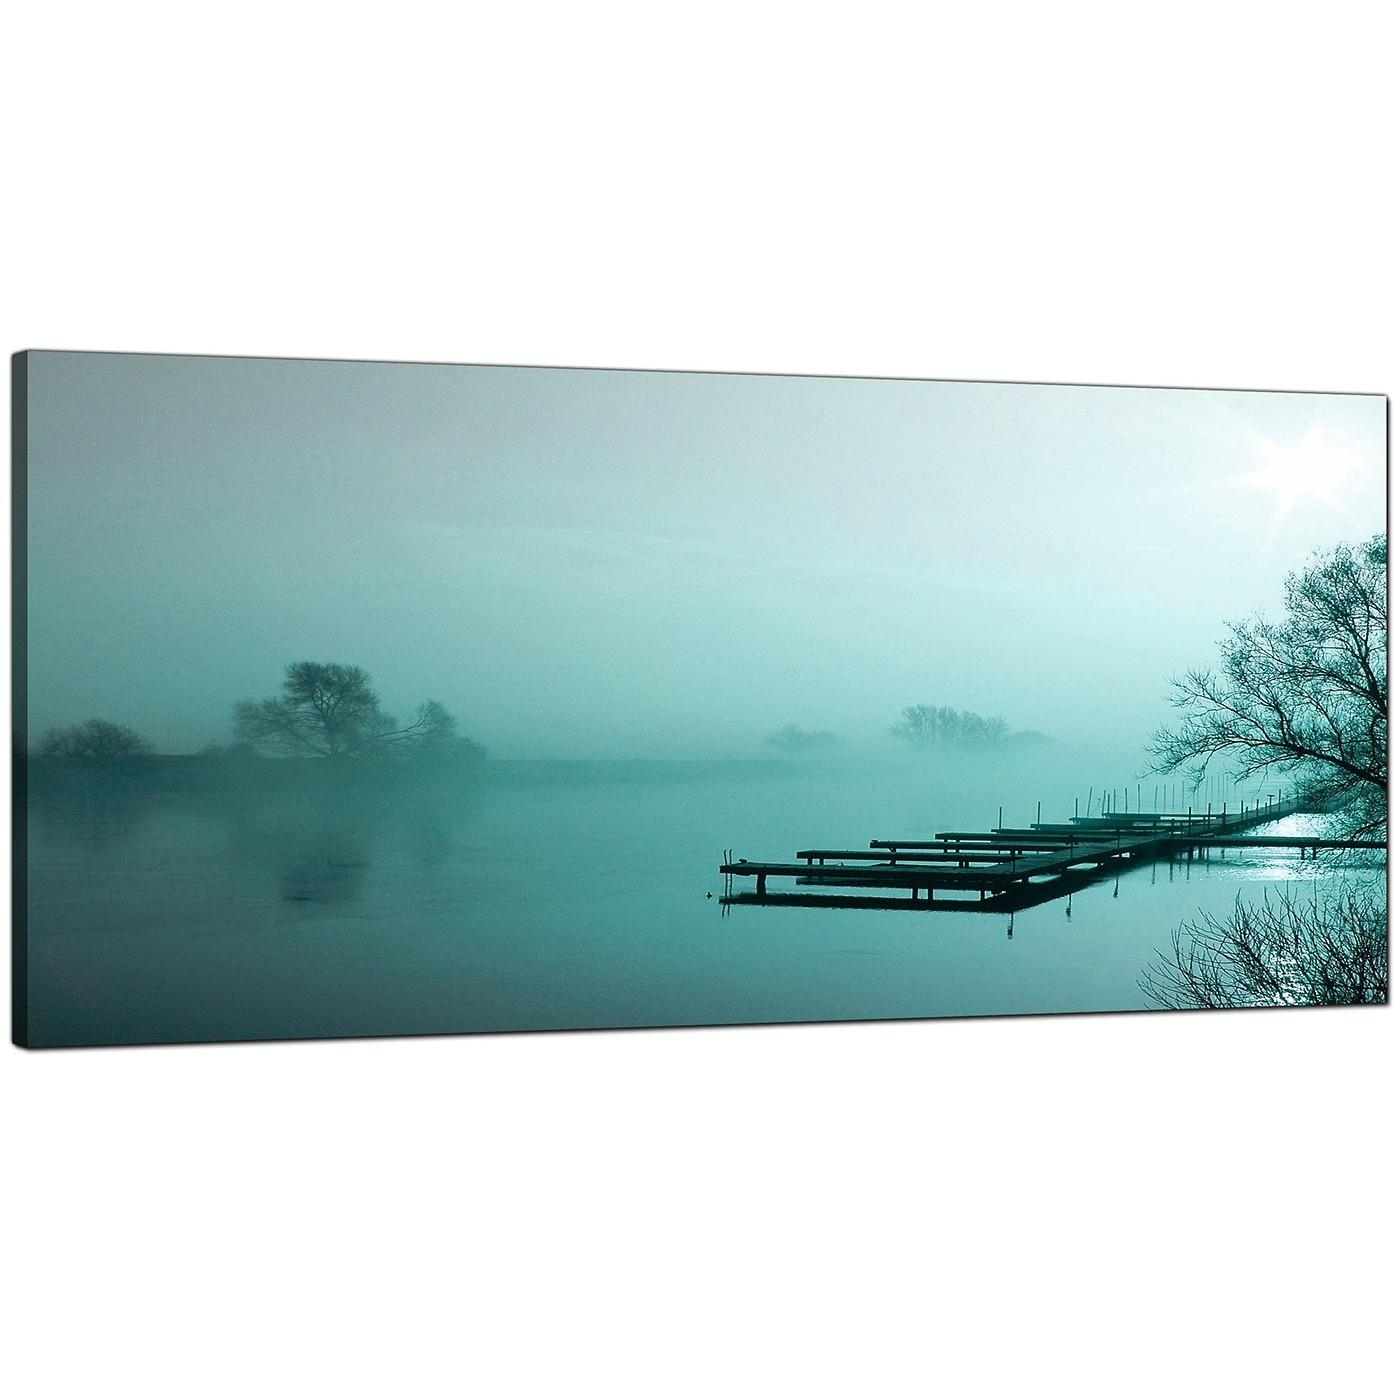 Large Teal Canvas Art Of A River Landscape Within Teal Wall Art Uk (Image 7 of 20)